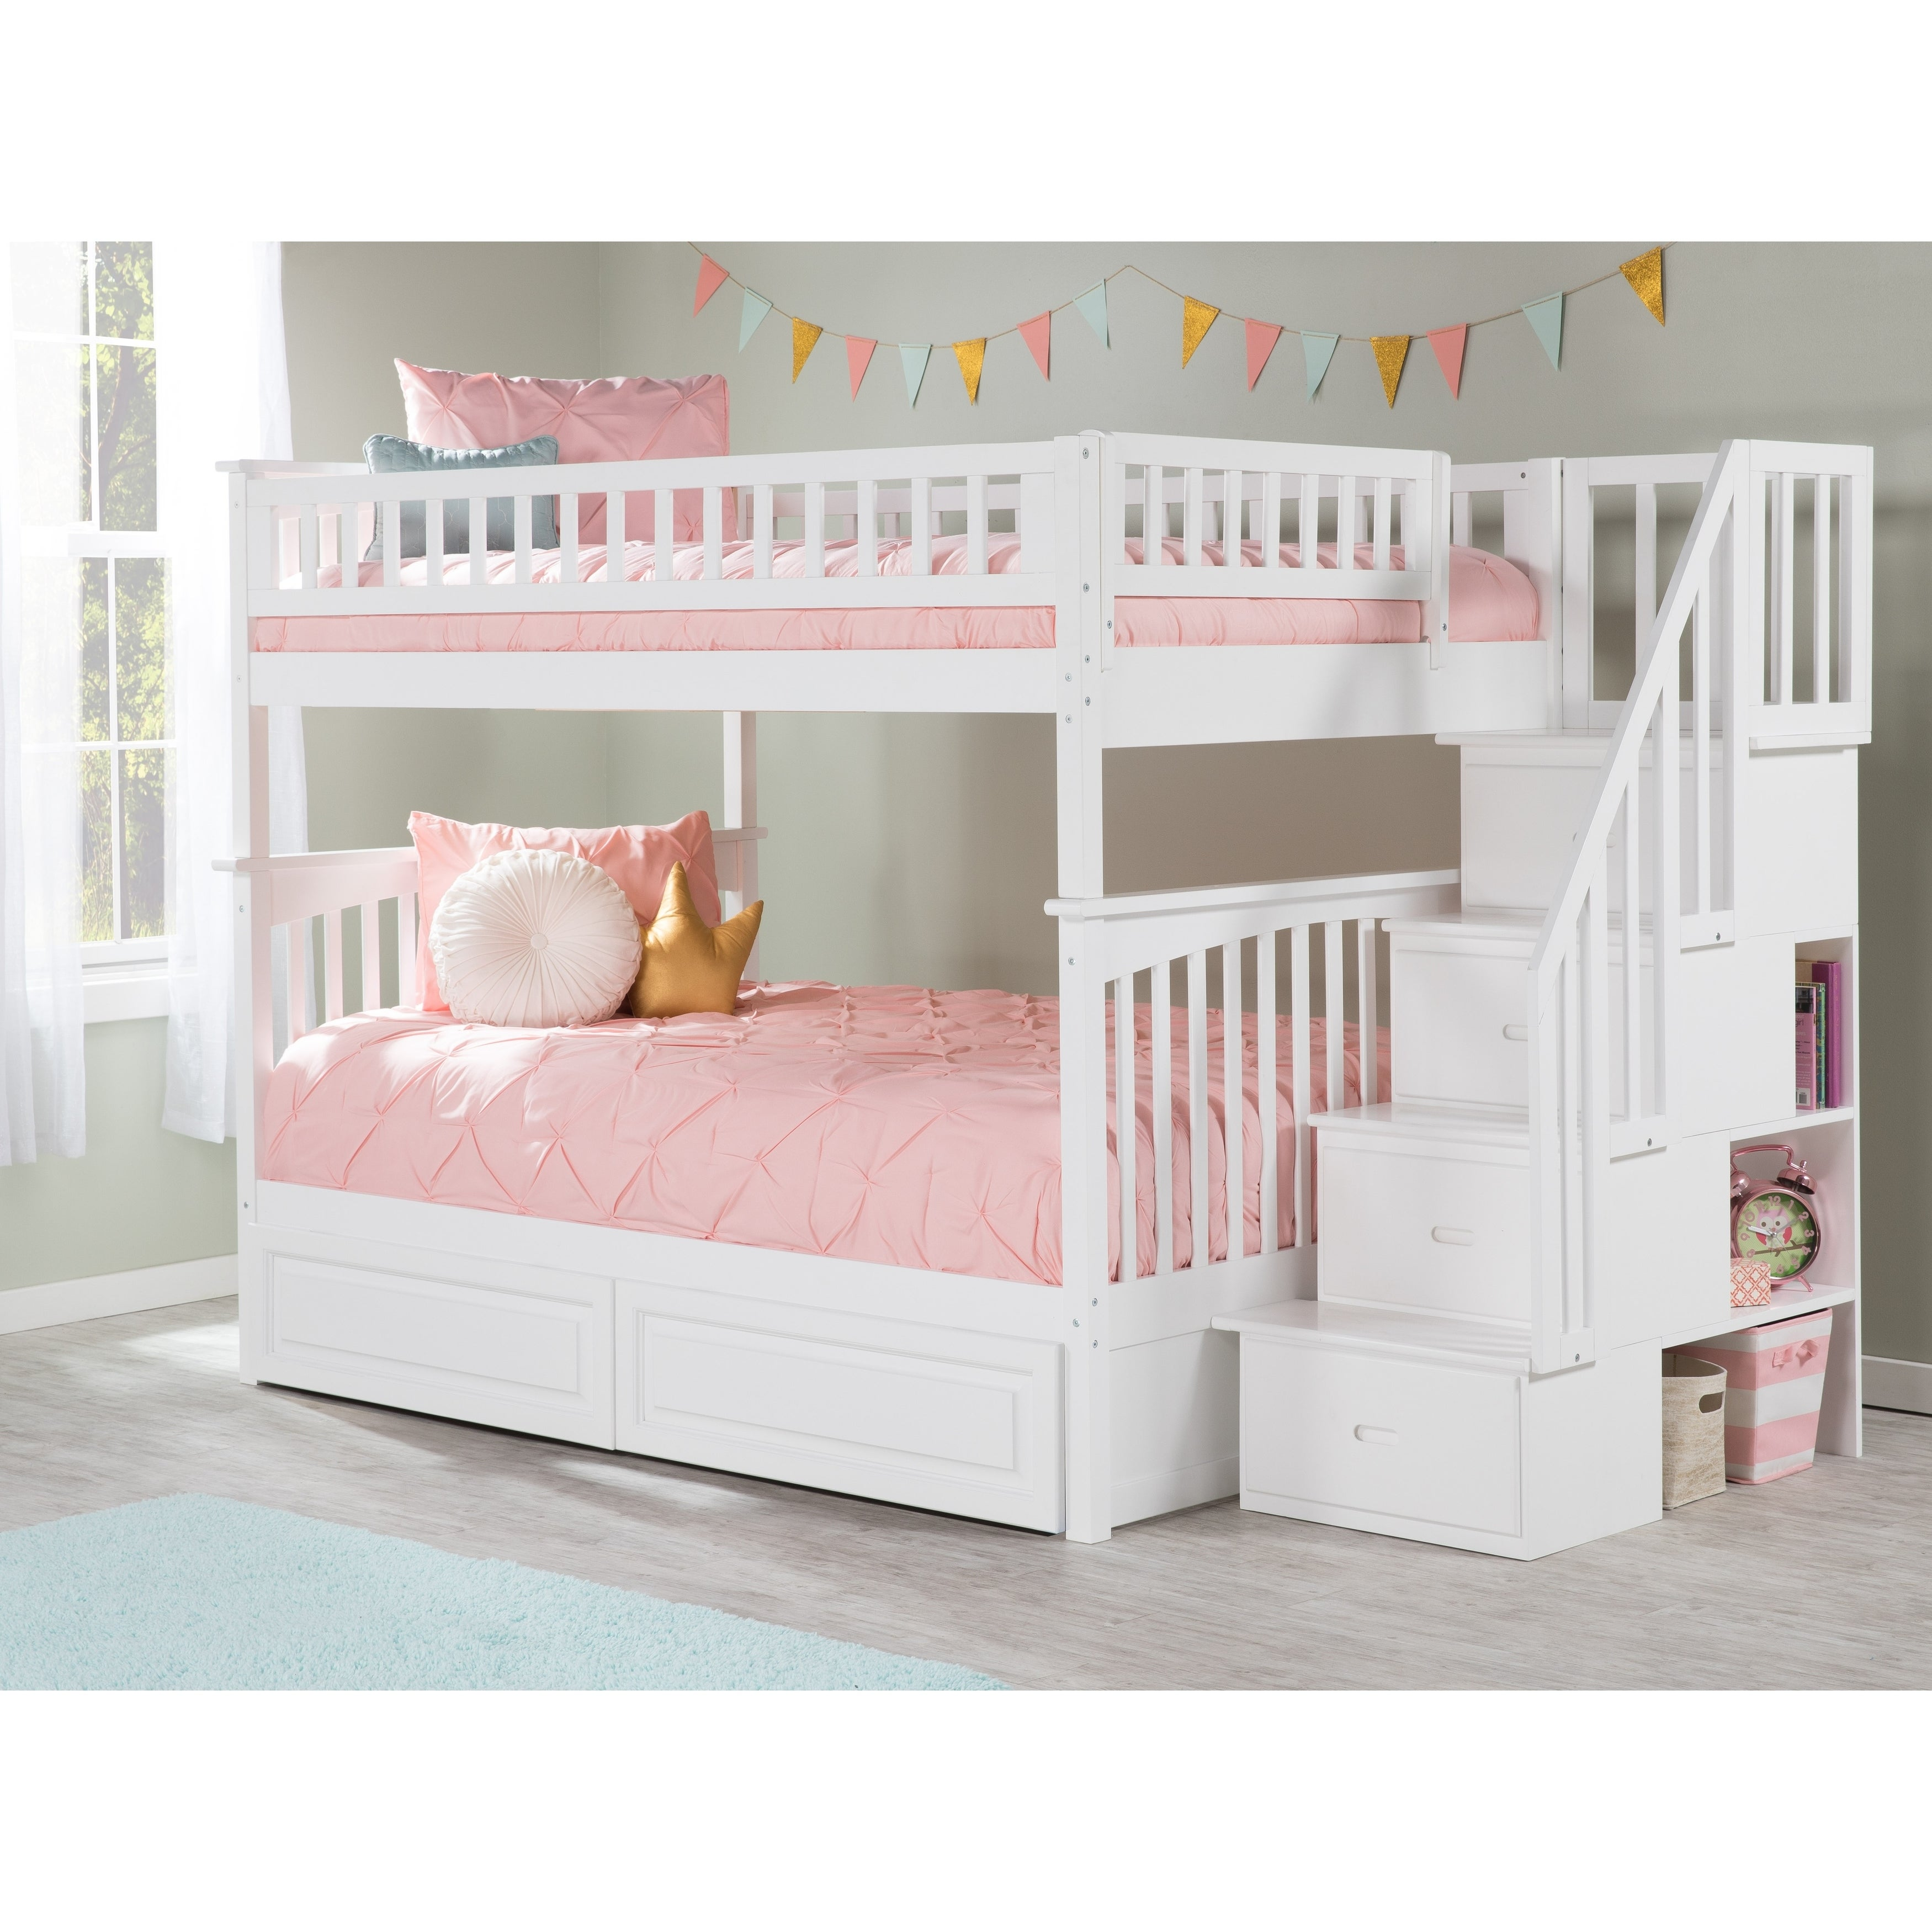 Picture of: Columbia White Full Over Full Staircase Bunk Bed W 2 Bed Drawers On Sale Overstock 13049022